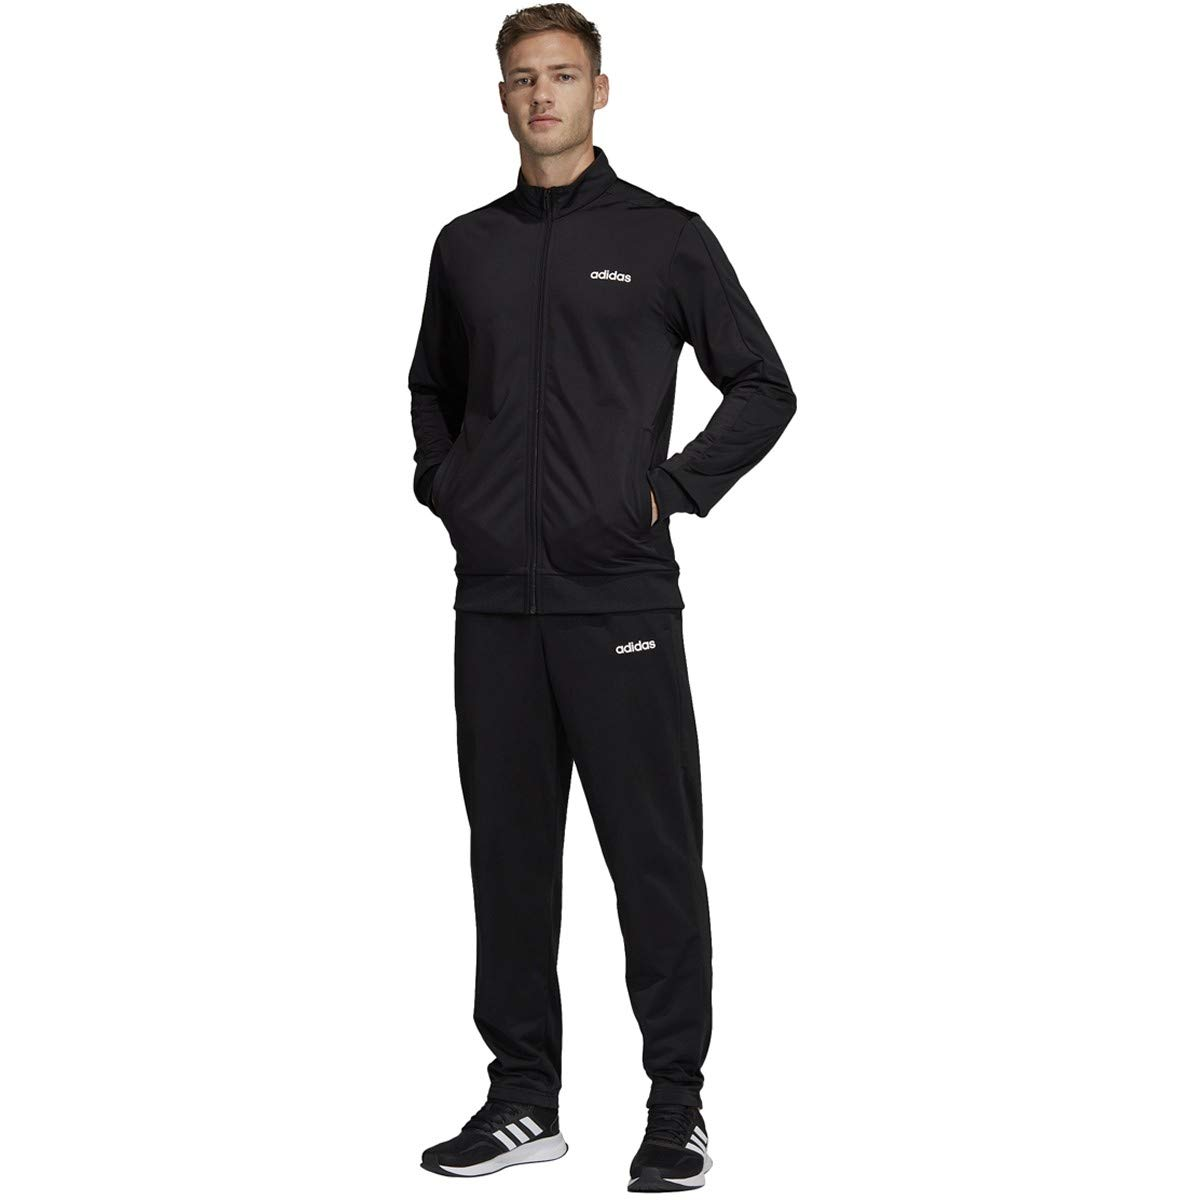 adidas Basics Track Suit-Men's Training S Black/Black by adidas